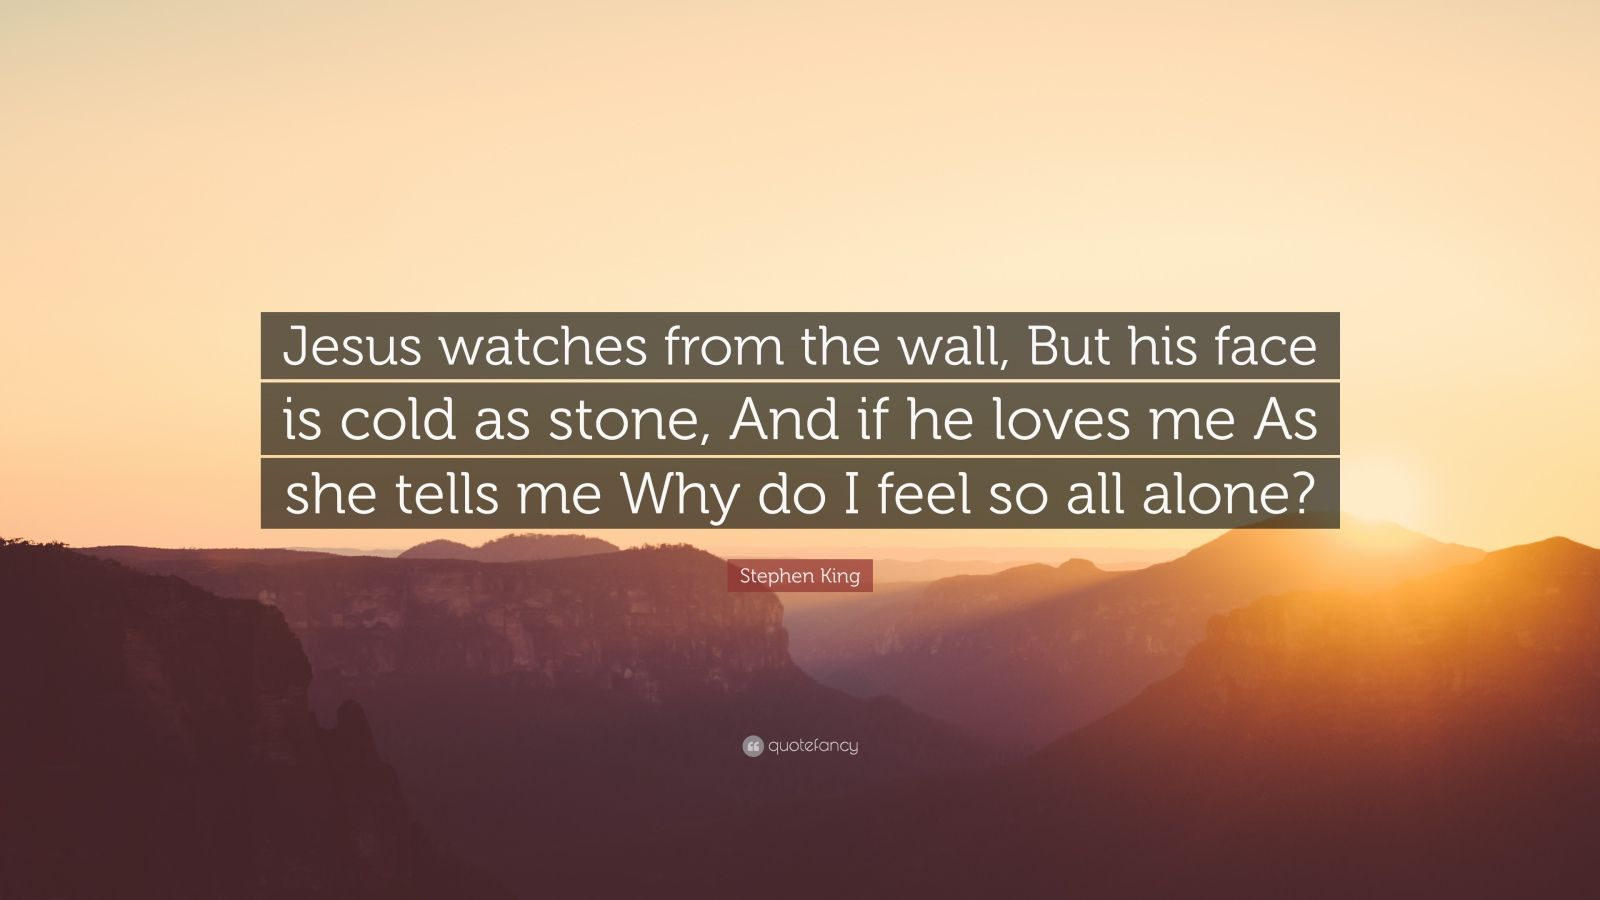 """Stephen King Quote: """"Jesus watches from the wall, But his face is cold as stone, And if he loves me As she tells me Why do I feel so all alone?"""""""